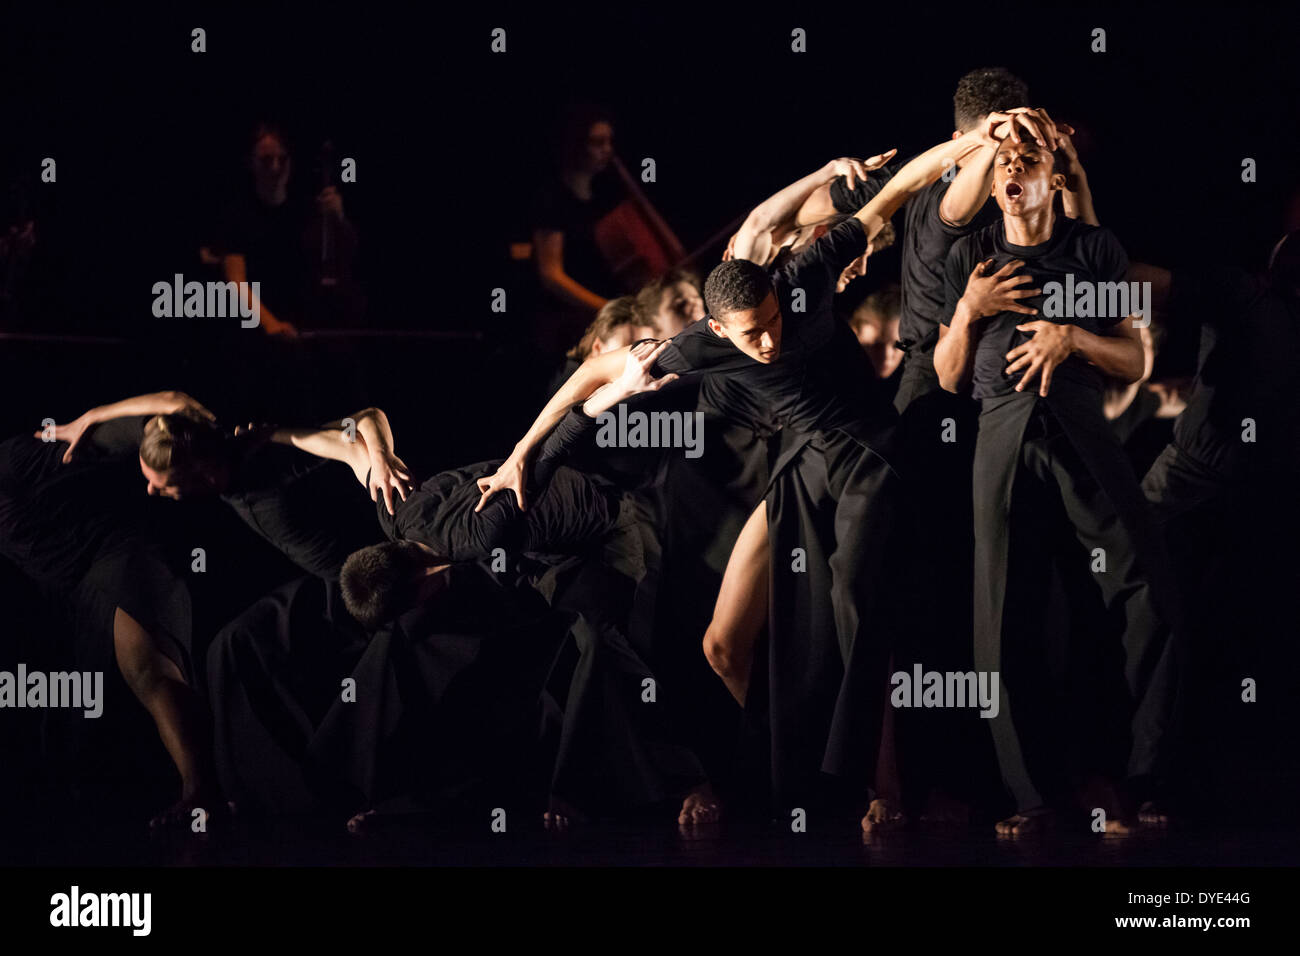 Lonodon 15 04 2014 National Youth Dance Company perfoming